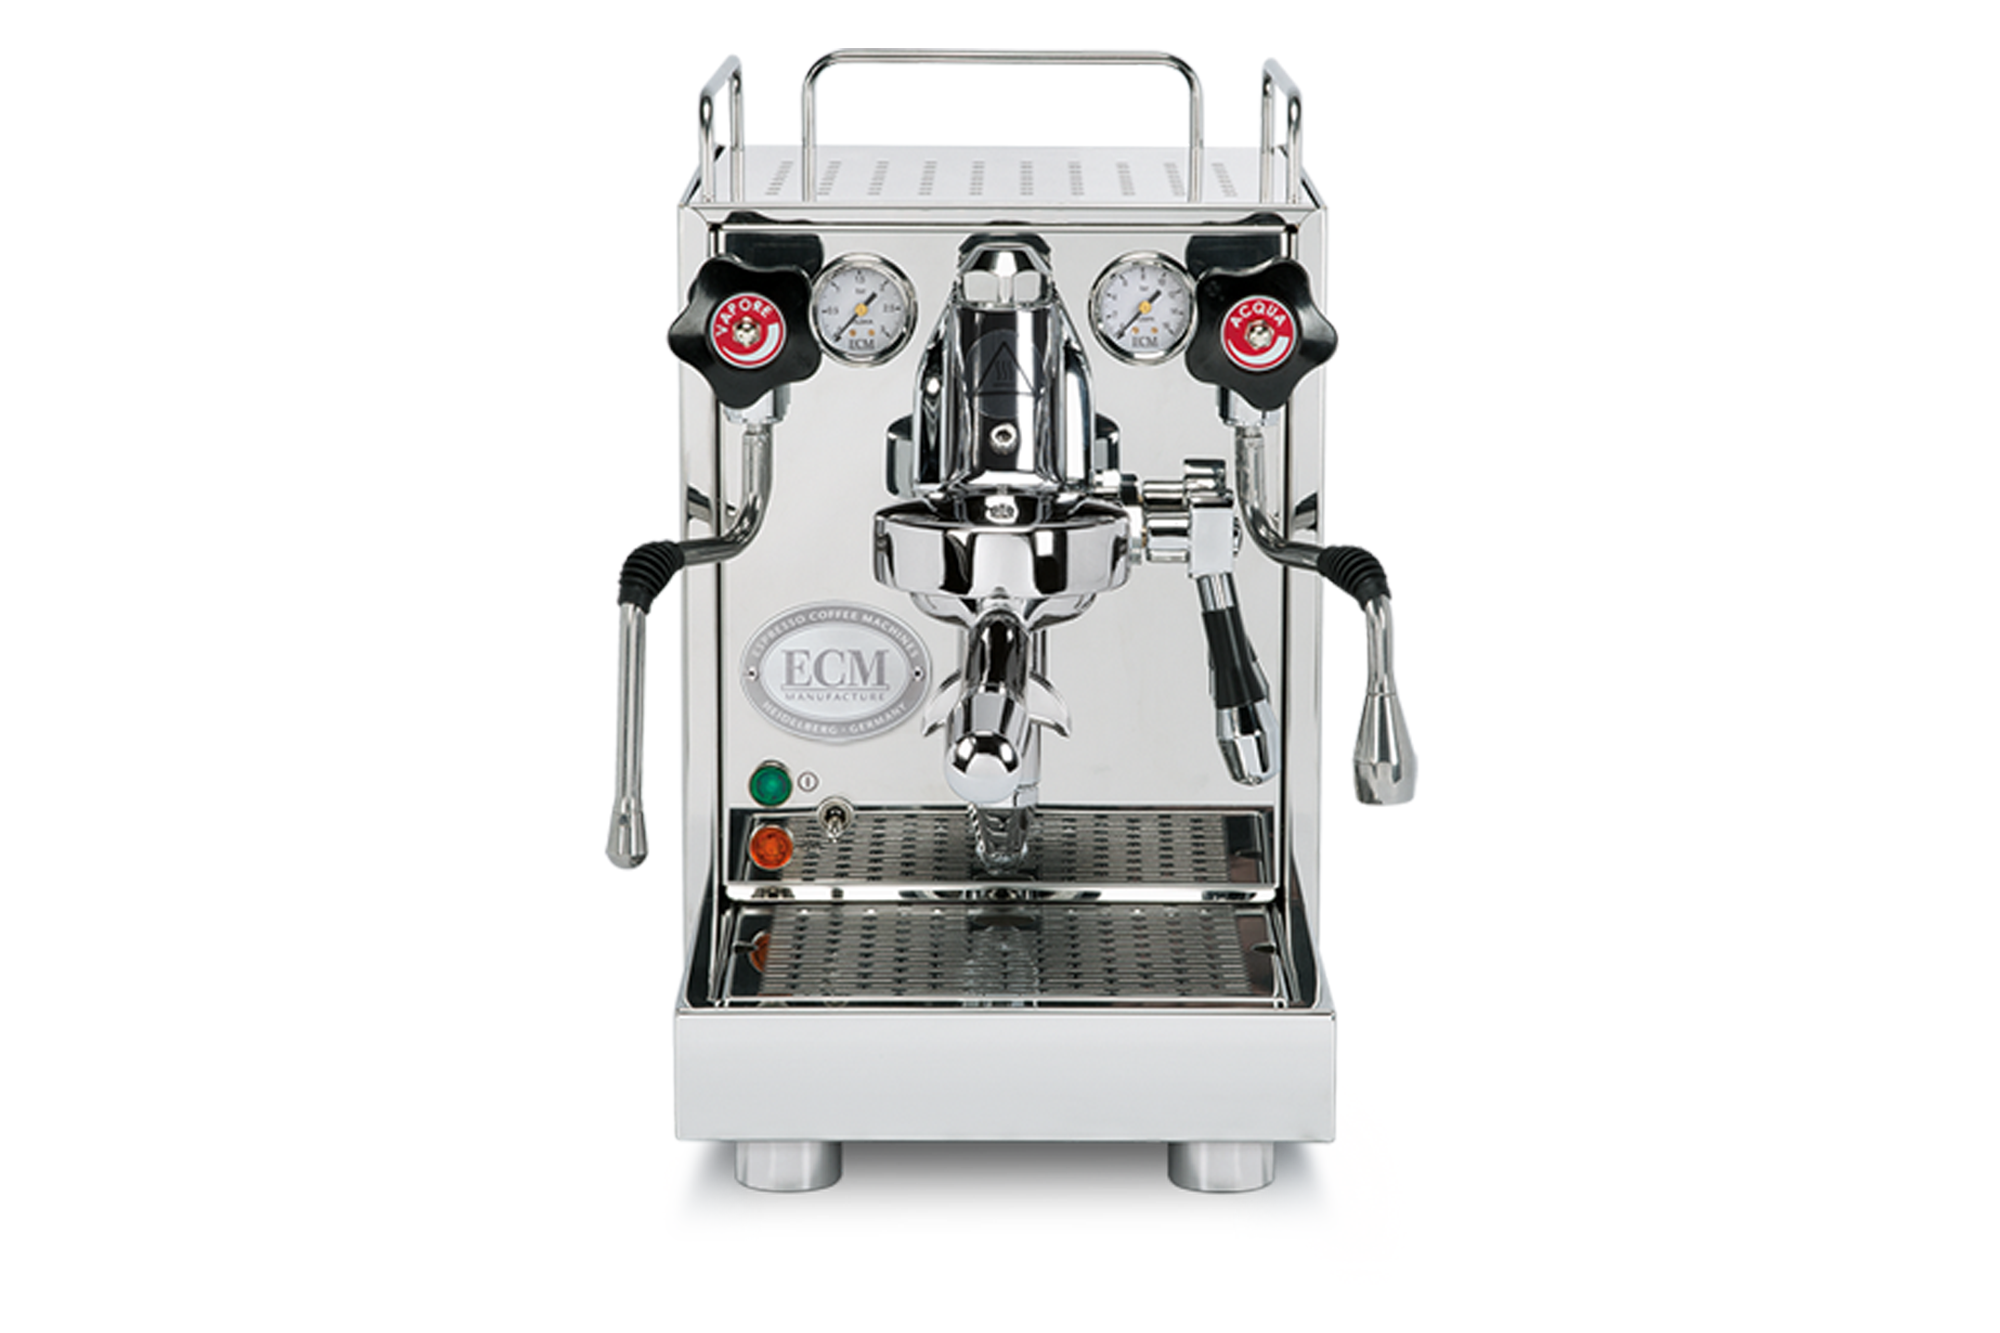 The NEW ECM Mechanika Slim Espresso Machine